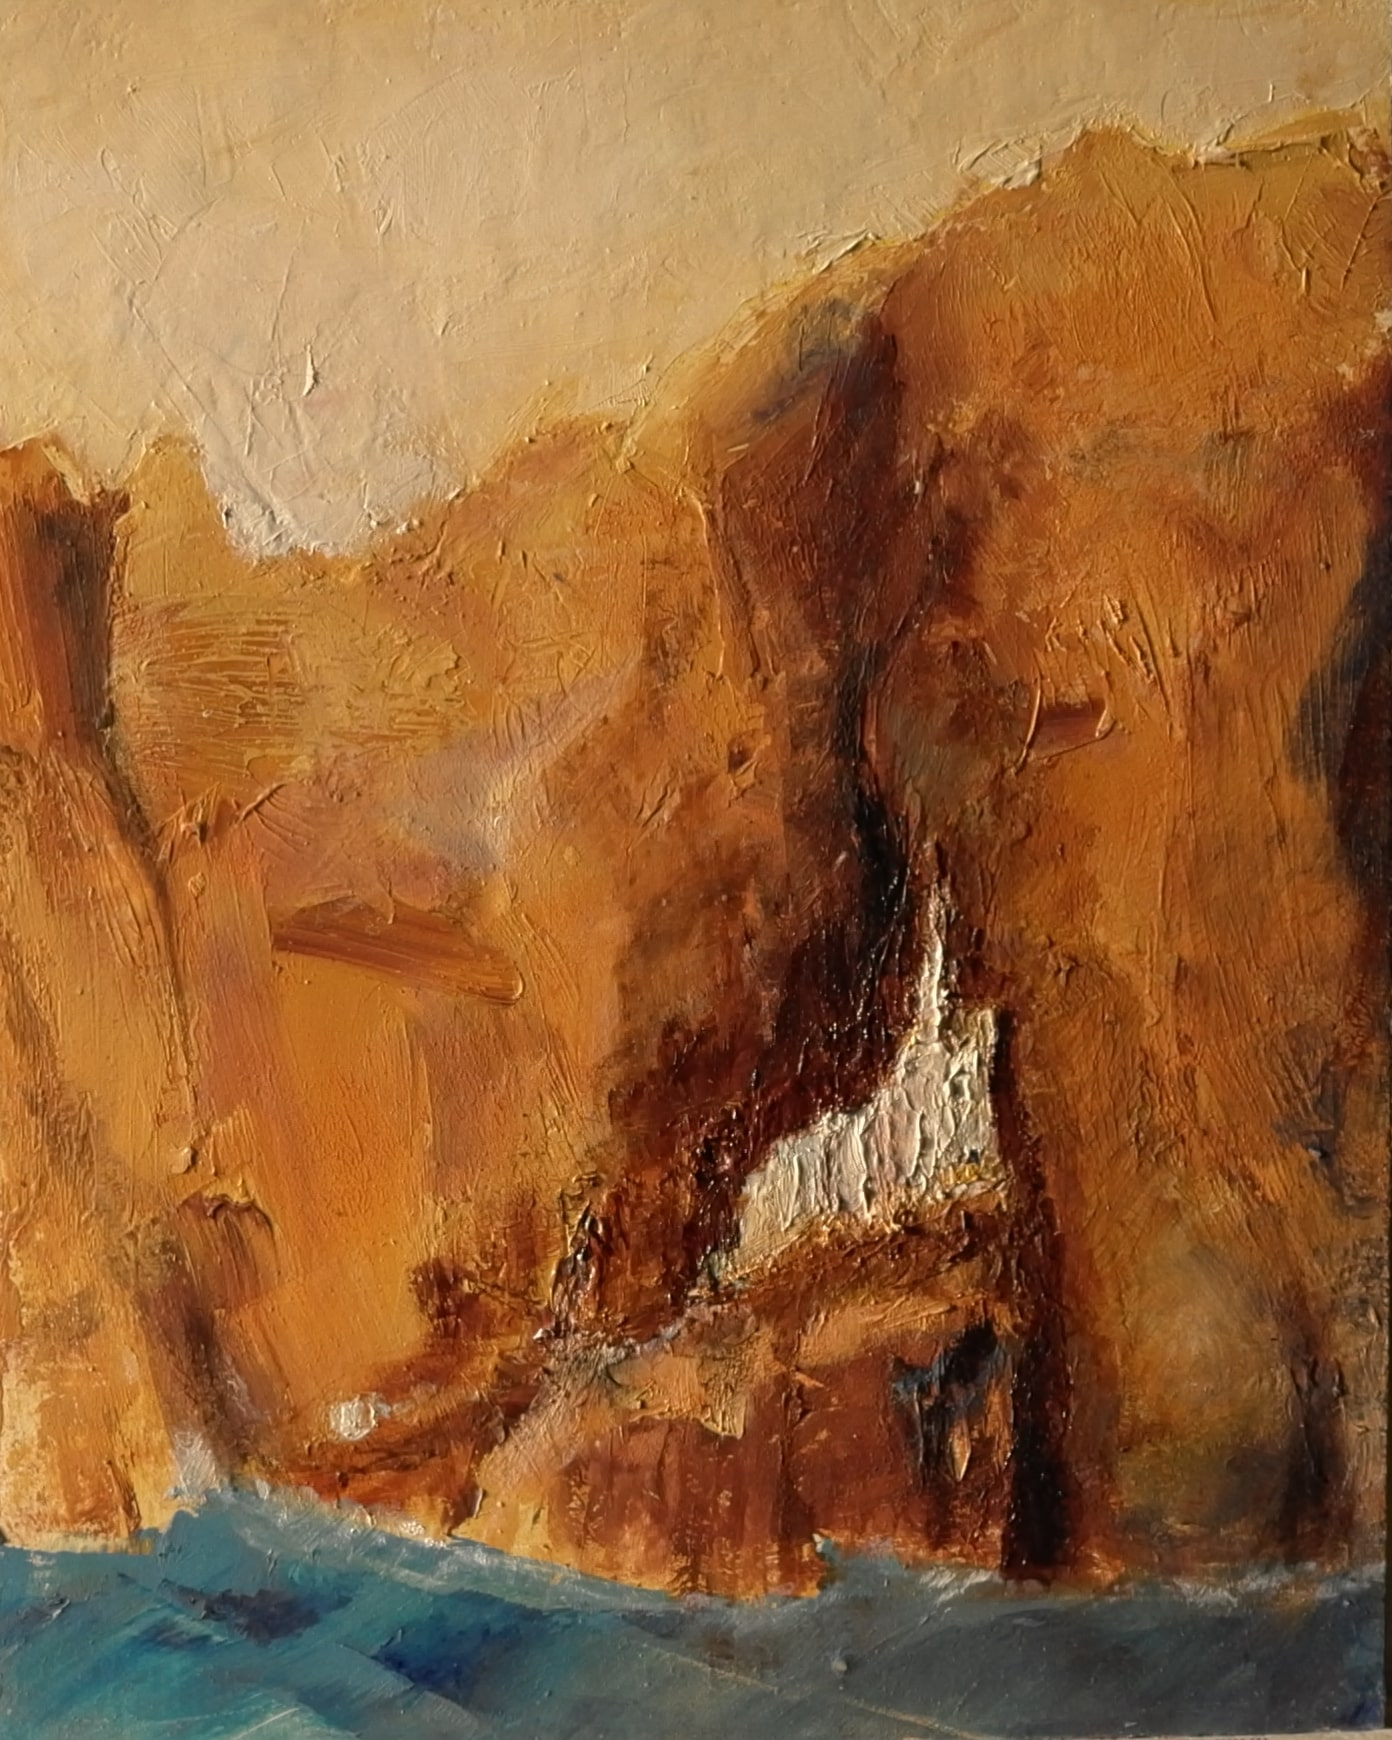 Amorgos (oil and wax on paper, 25cm x 20cm)